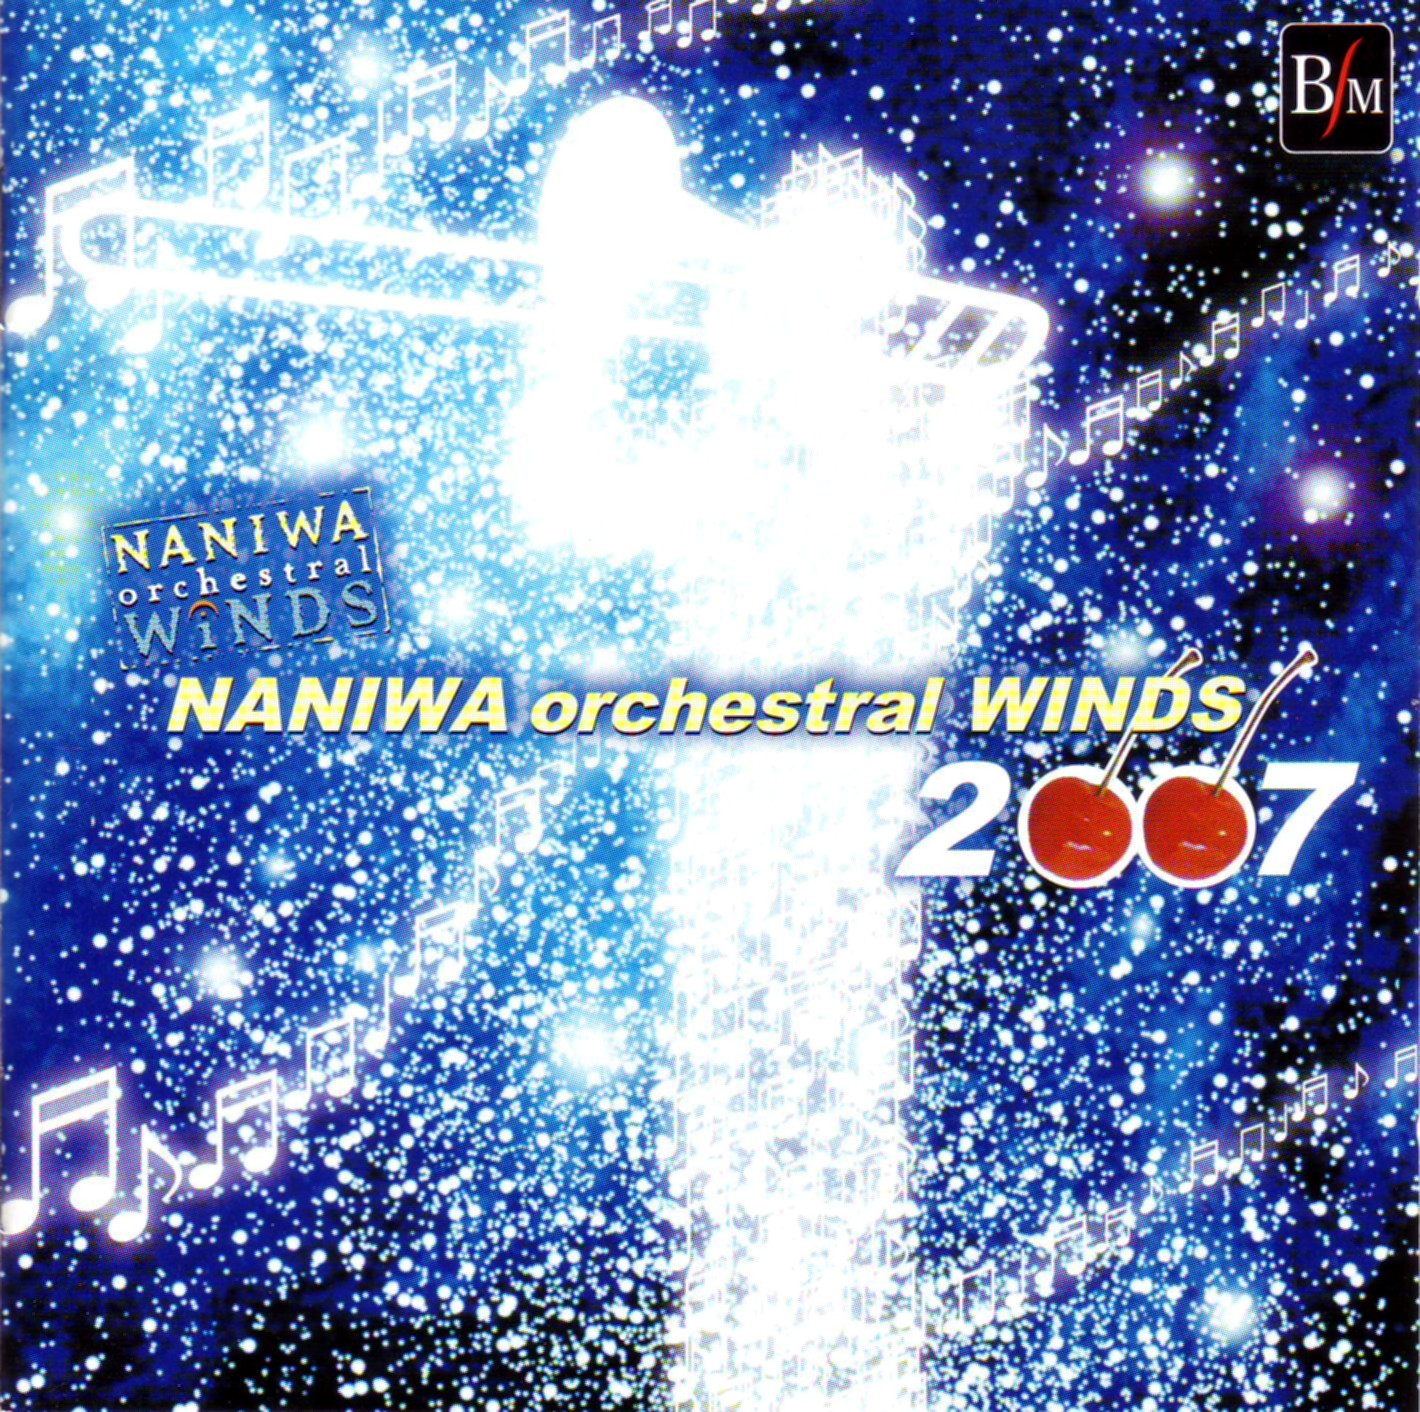 Naniwa Orch Winds 2007